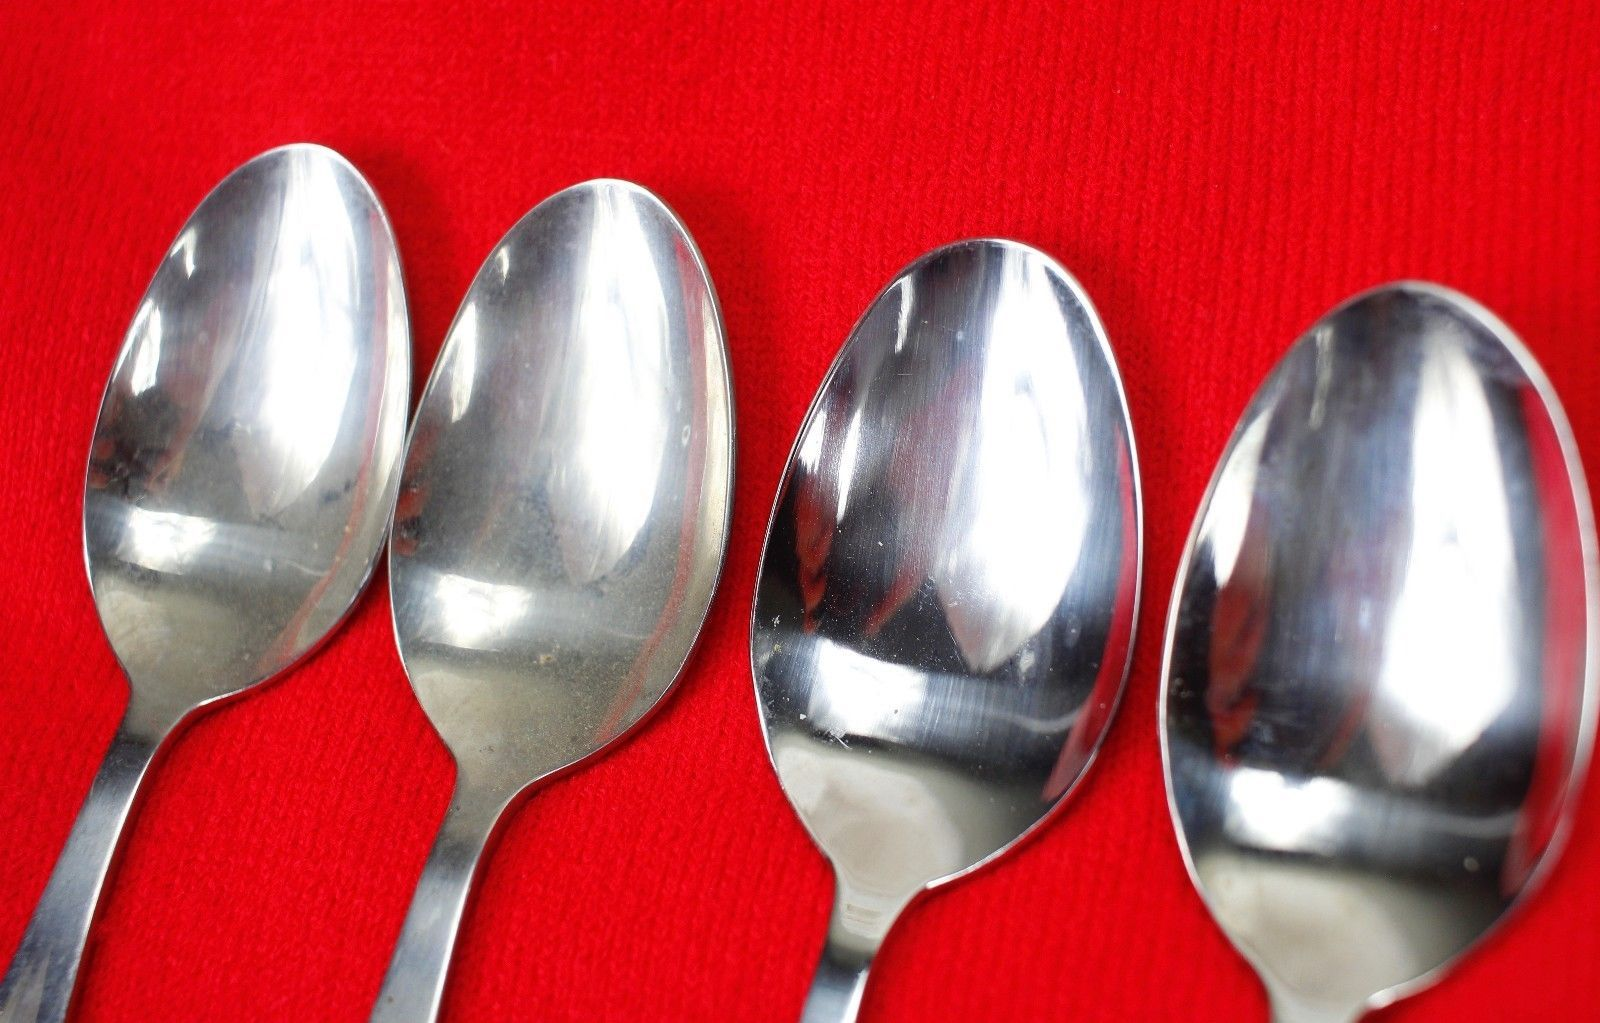 6X Teaspoons Spoons International Silver Cirque Stainless Glossy Flatware 6""